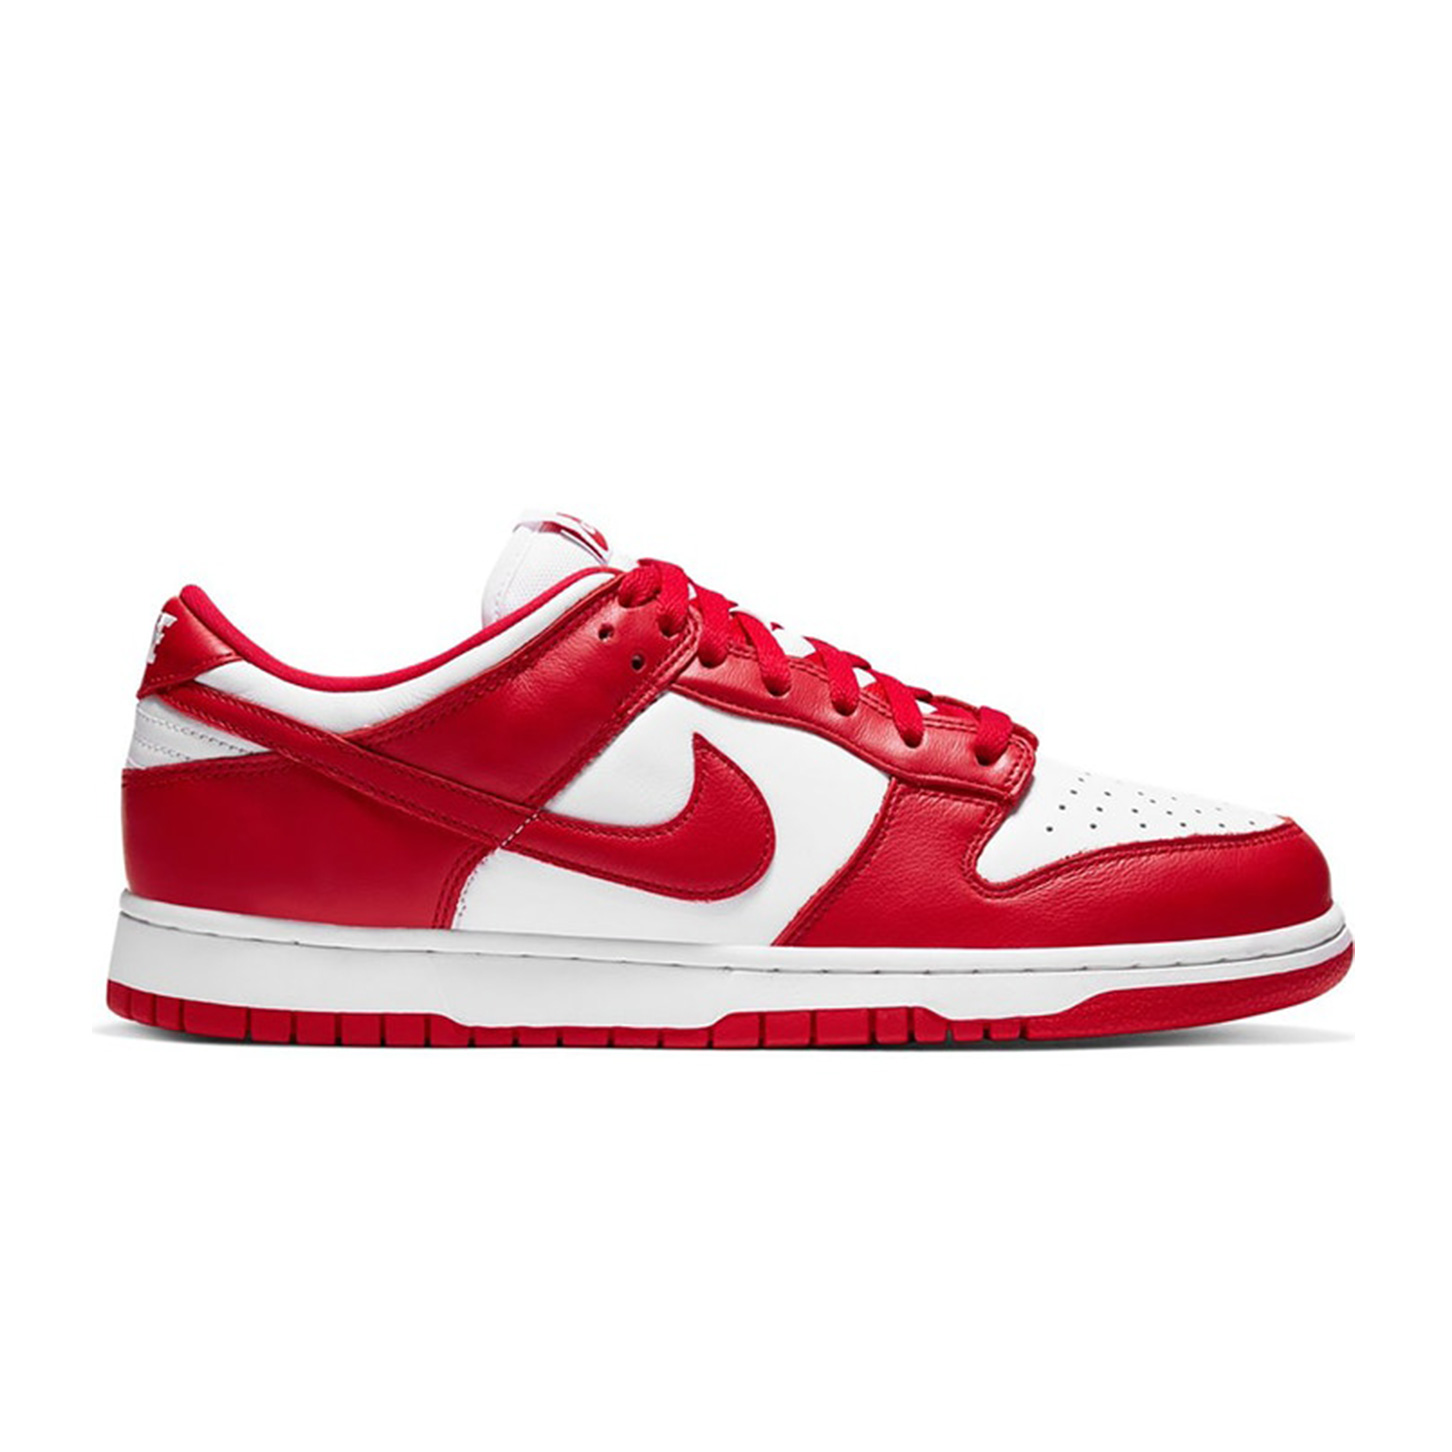 Dunk Low SP White University Red (2020)